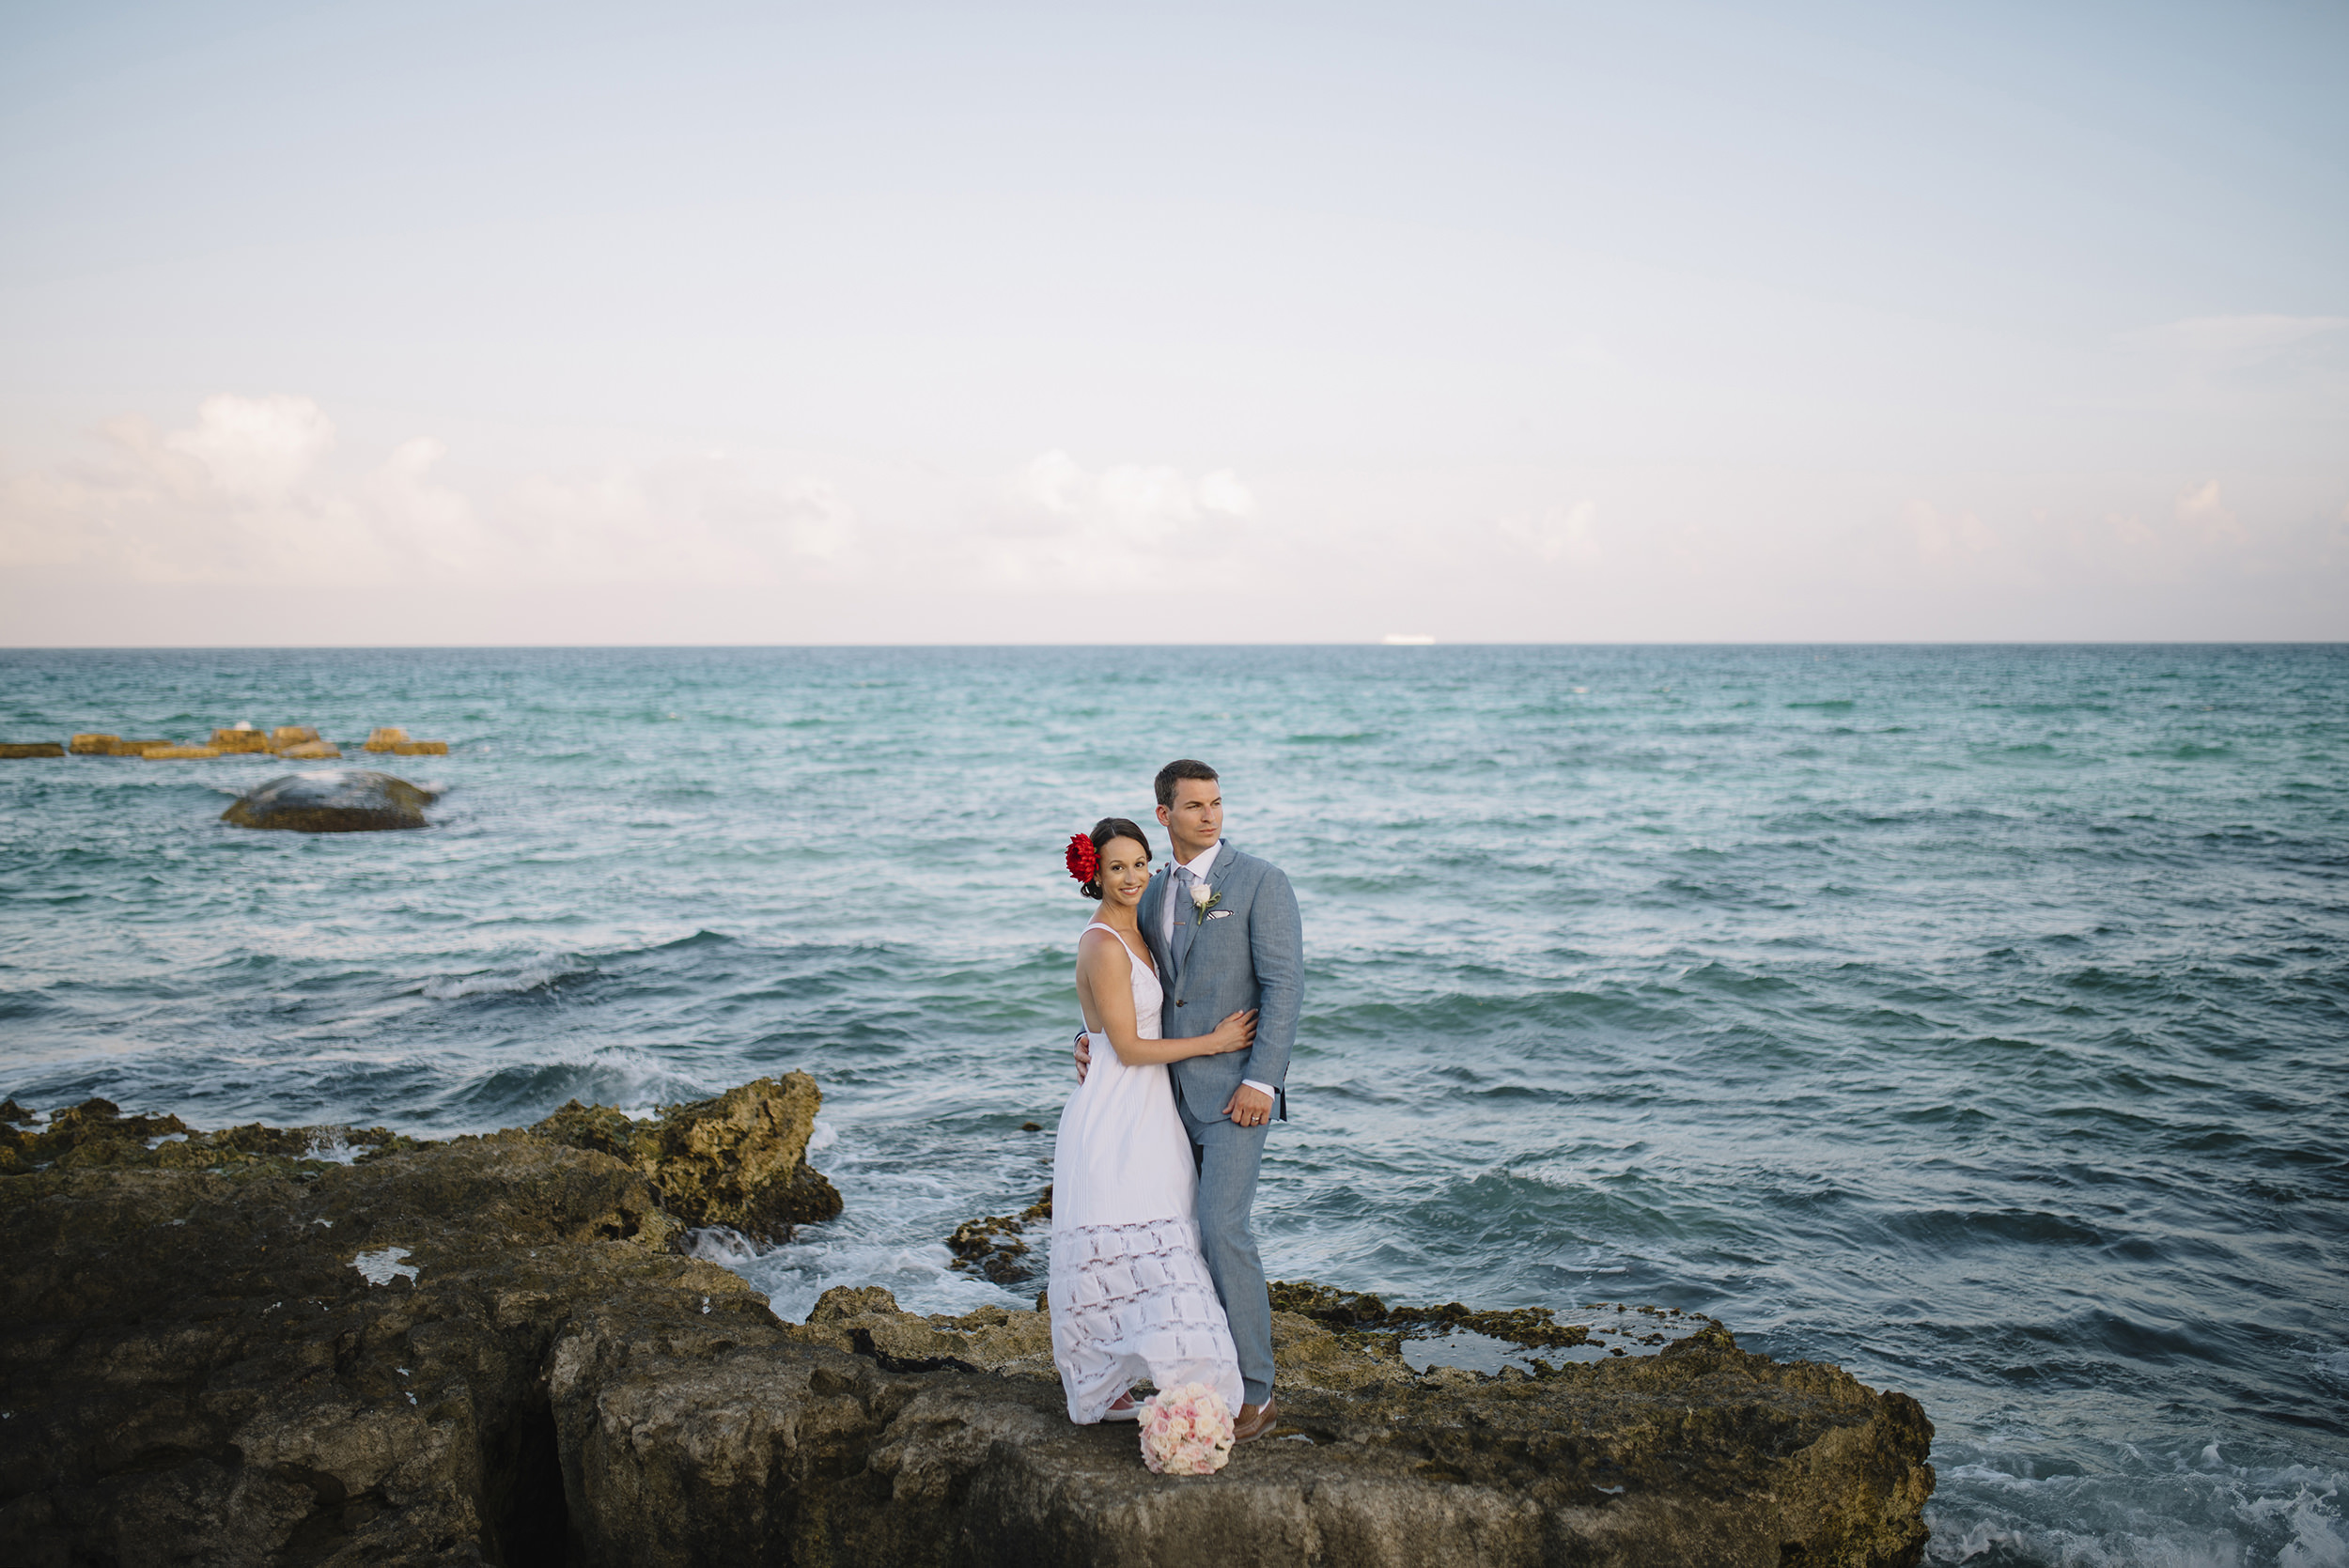 Colby-and-Jess-Intimate-Beach-Wedding-Destination-Cancun-Mexico84.jpg